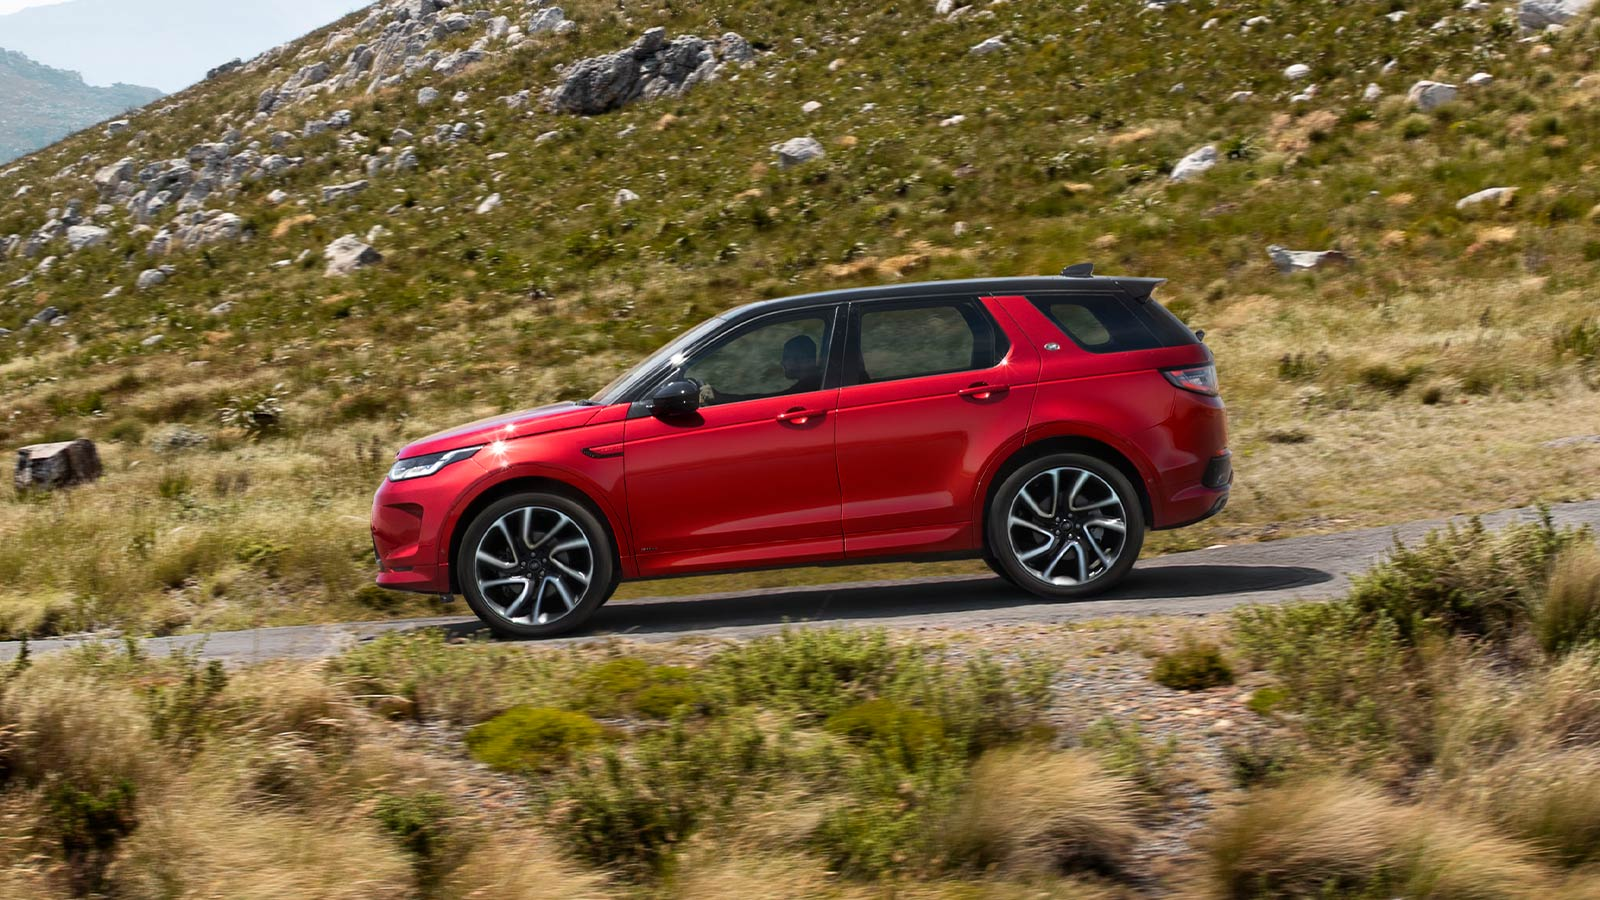 Red Discovery Sport driving through a rural area